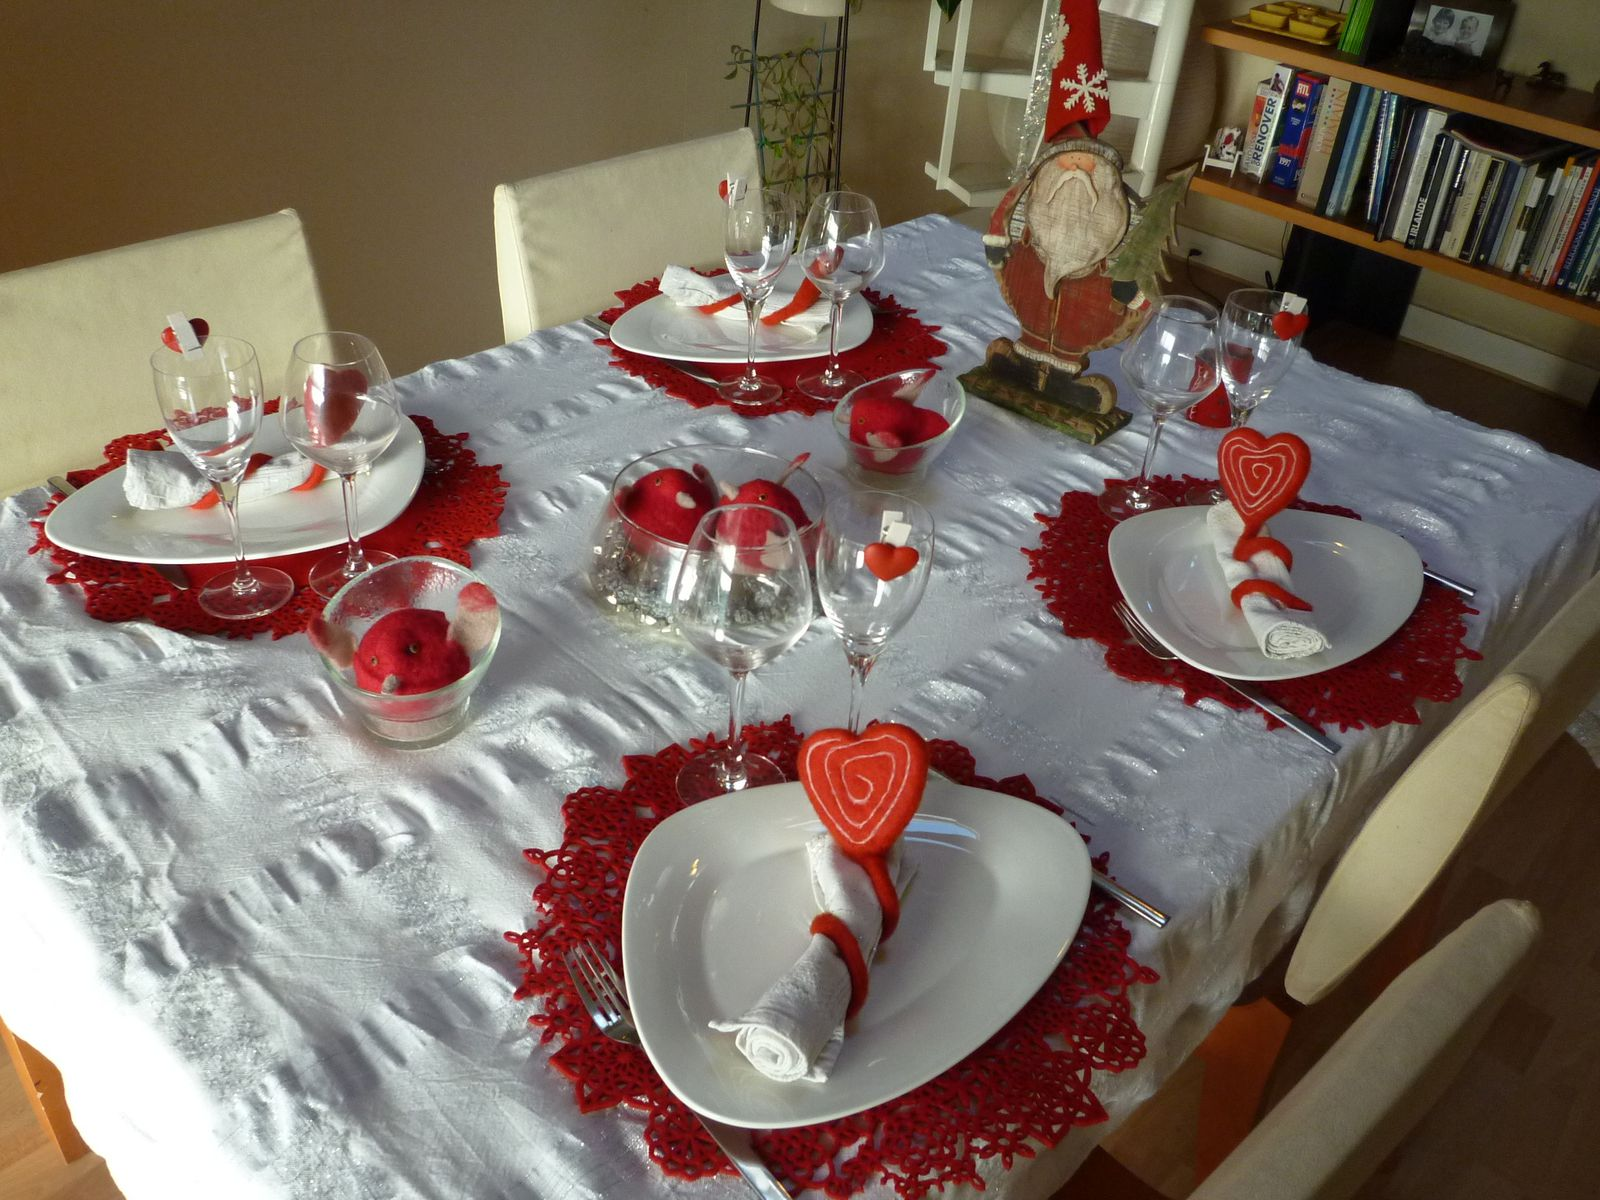 D corations pour tables de noel recettes astuces et d co for Decoration de table de noel